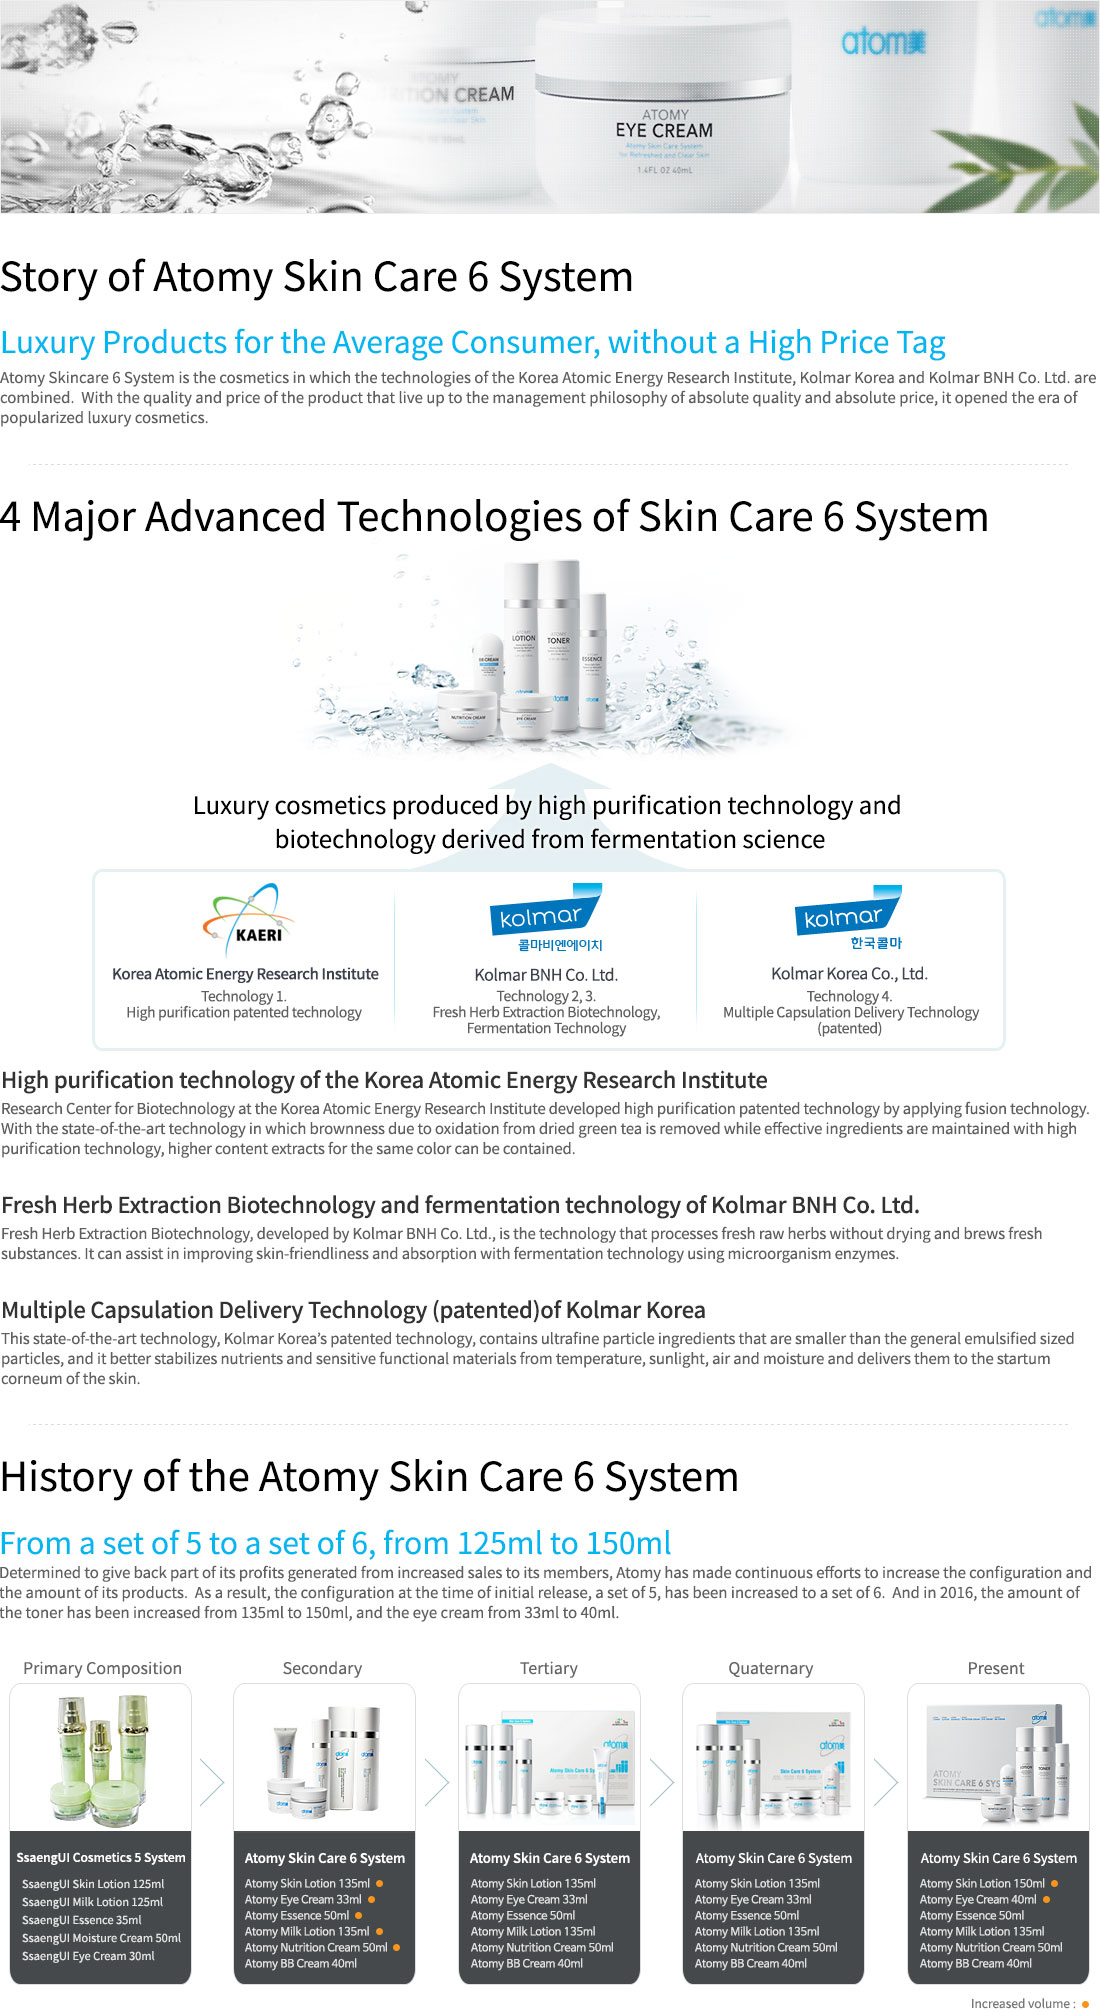 Story of Atomy Skin Care 6 System